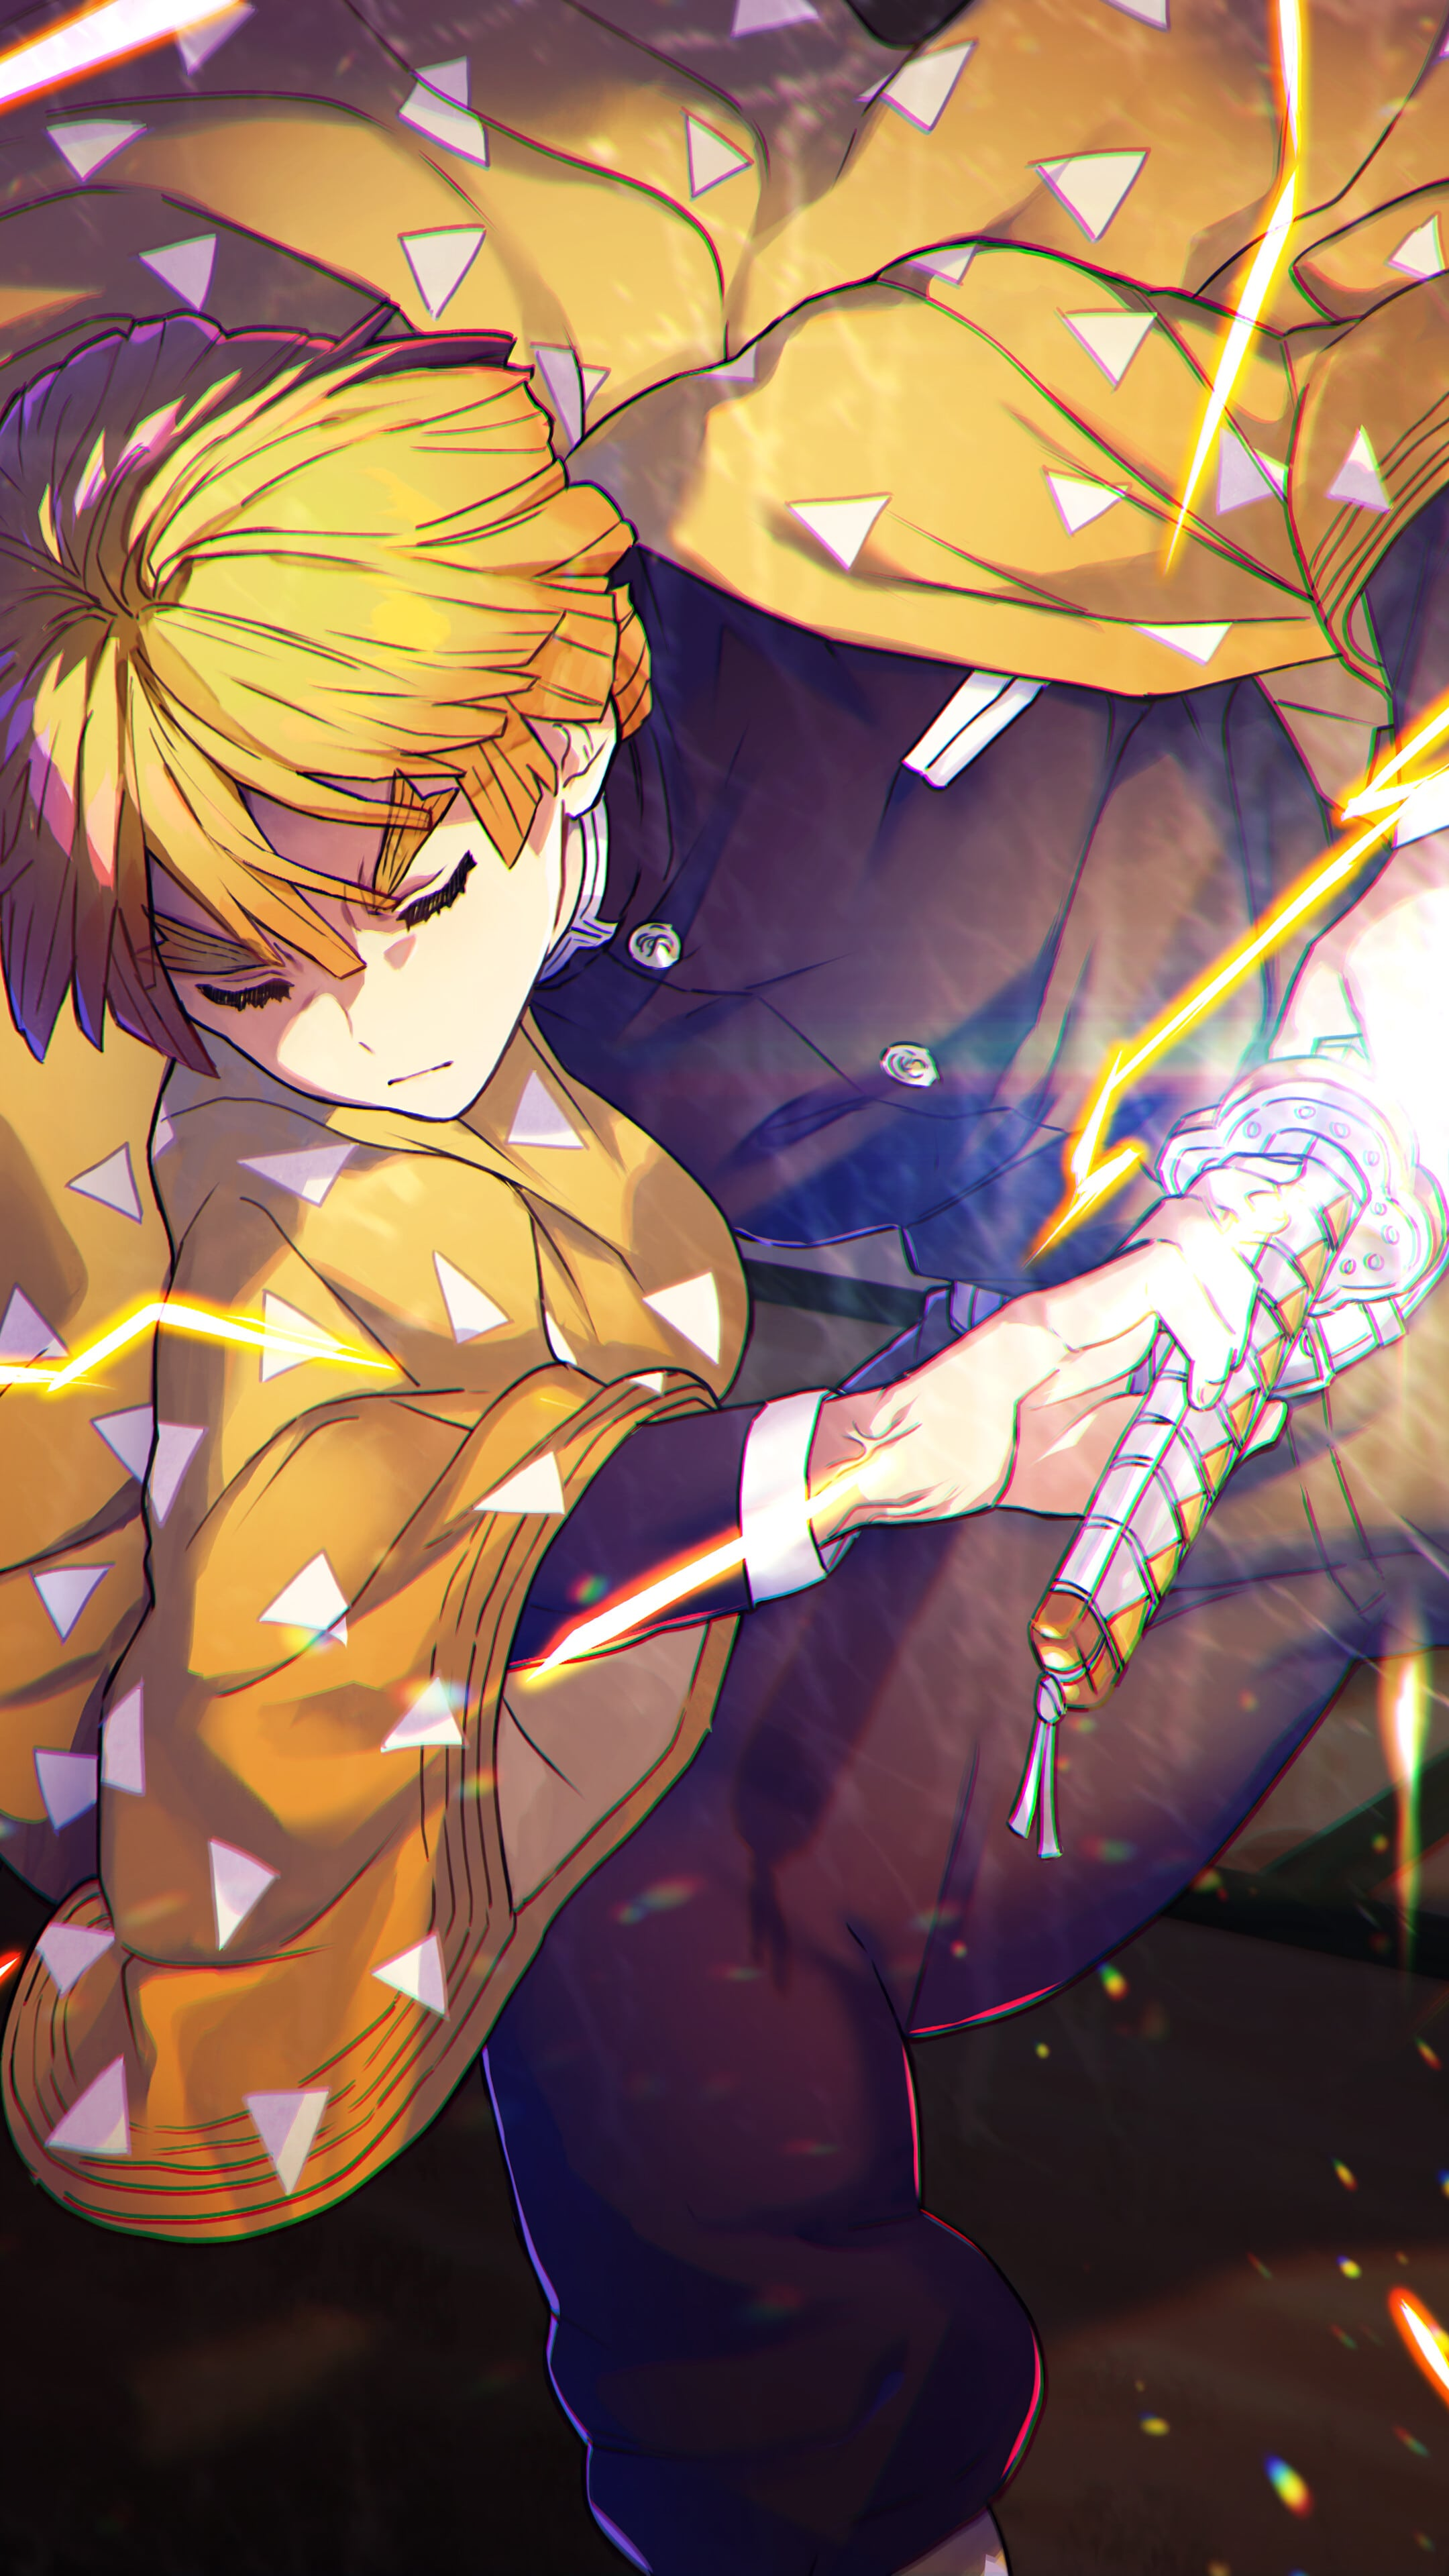 Zenitsu Wallpaper Android Kolpaper Awesome Free Hd Wallpapers Pc wallpaper agatsuma zenitsu kimetso no yaiba demon slayer katana for desktop mac laptop smartphones and tablets with different resolutions. zenitsu wallpaper android kolpaper